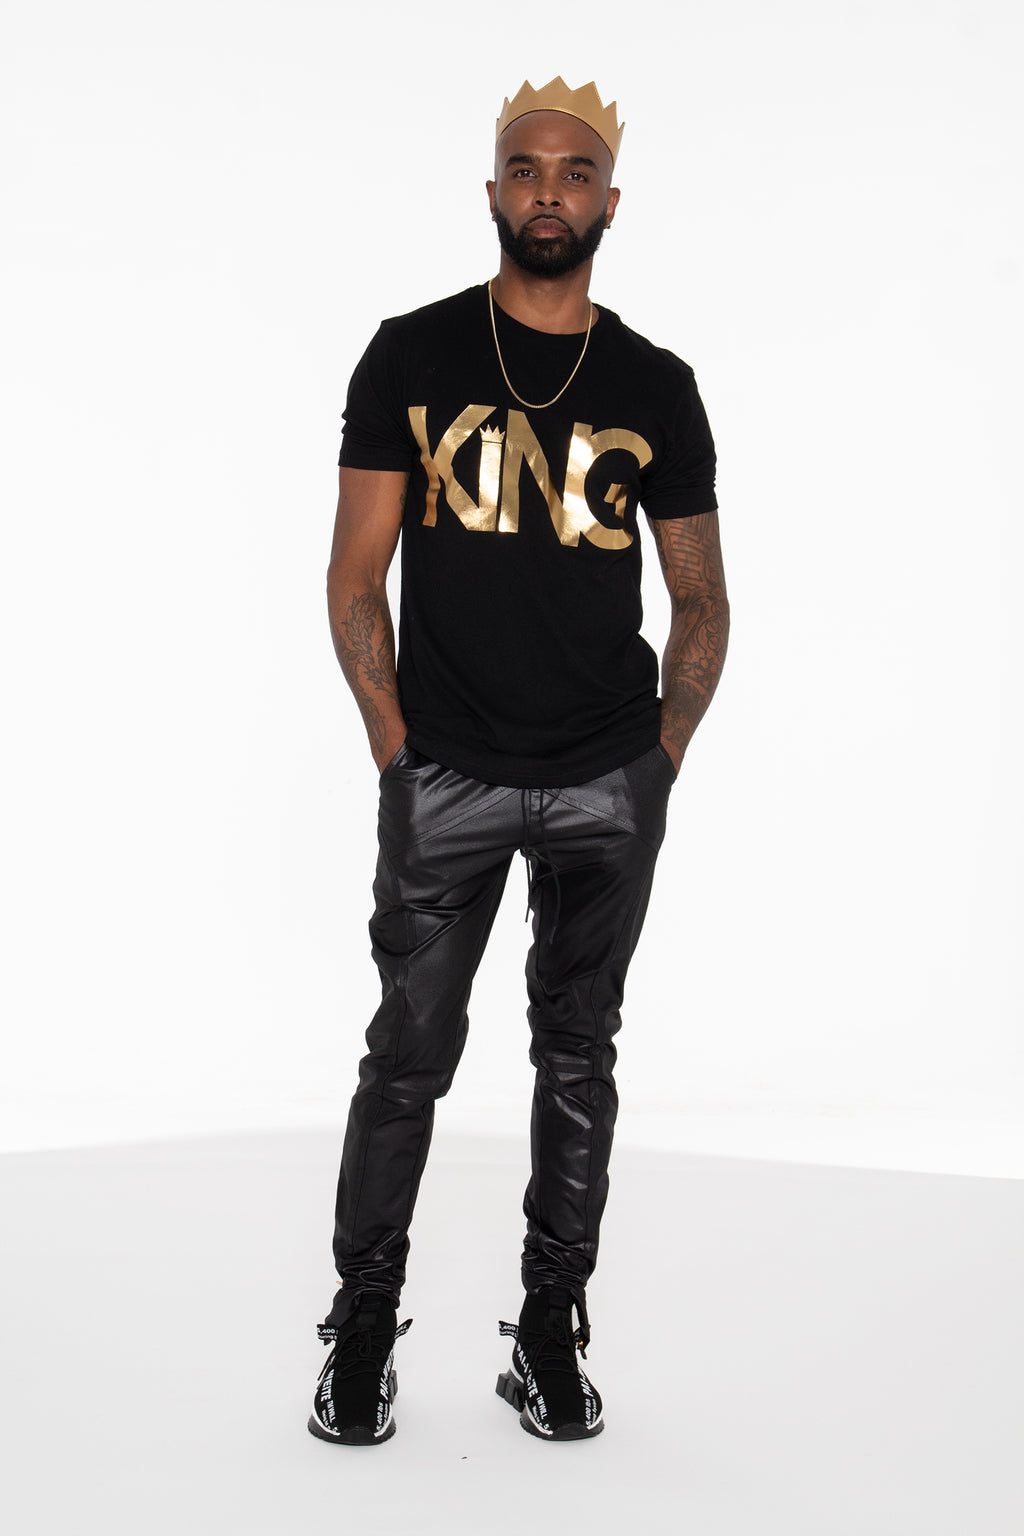 (PRE-ORDER) KING Curved Hem Graphic T-Shirt (Gold) - pacorogiene